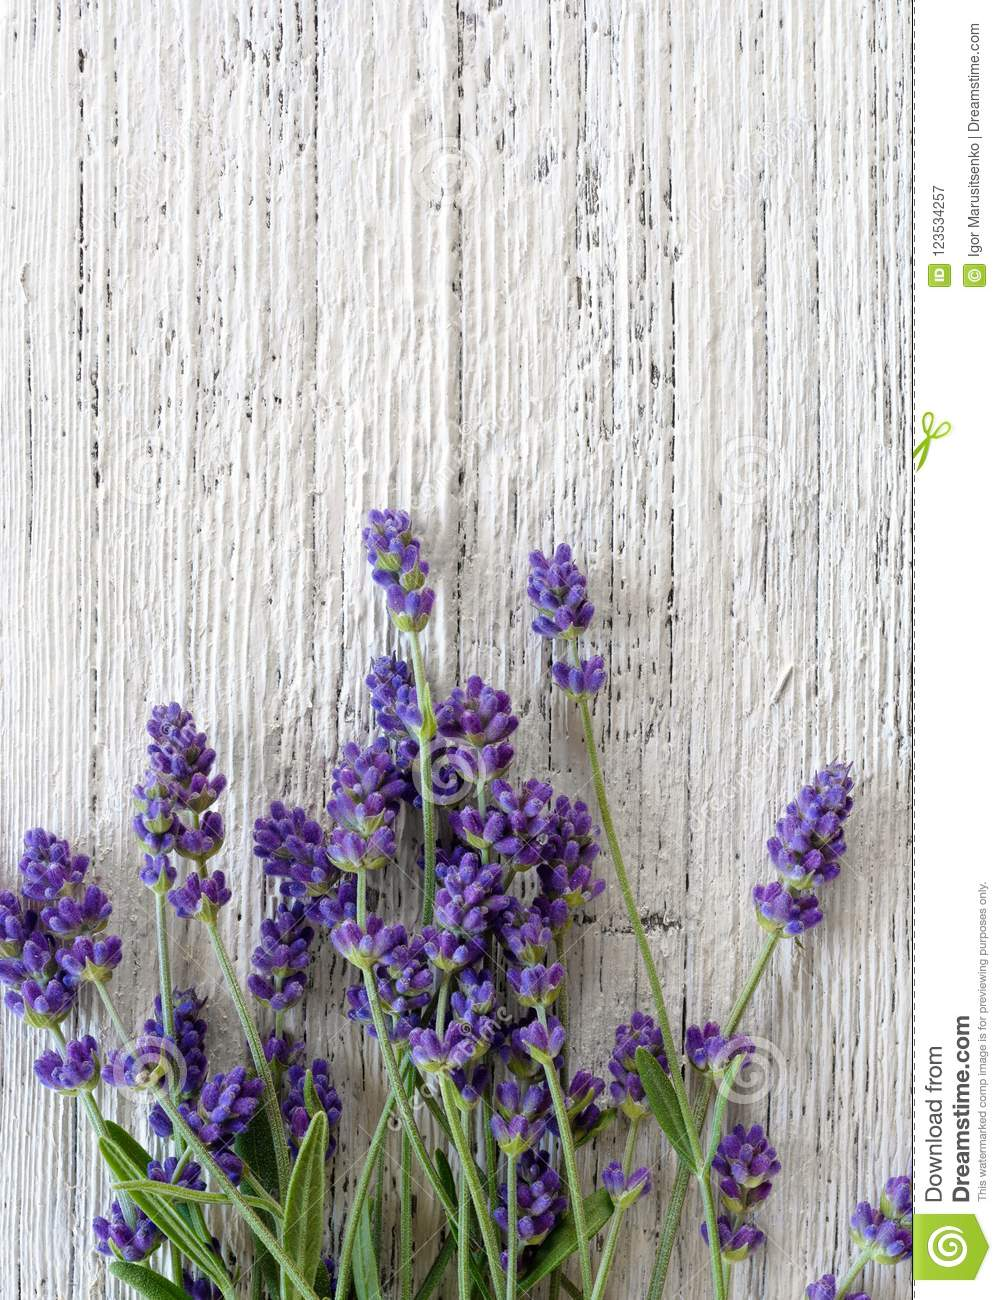 Lavender Background Vertical Top View Stock Image Image Of Healthy Blank 123534257 New users enjoy 60% off. https www dreamstime com lavender background vertical top view flowers white wooden textured image123534257